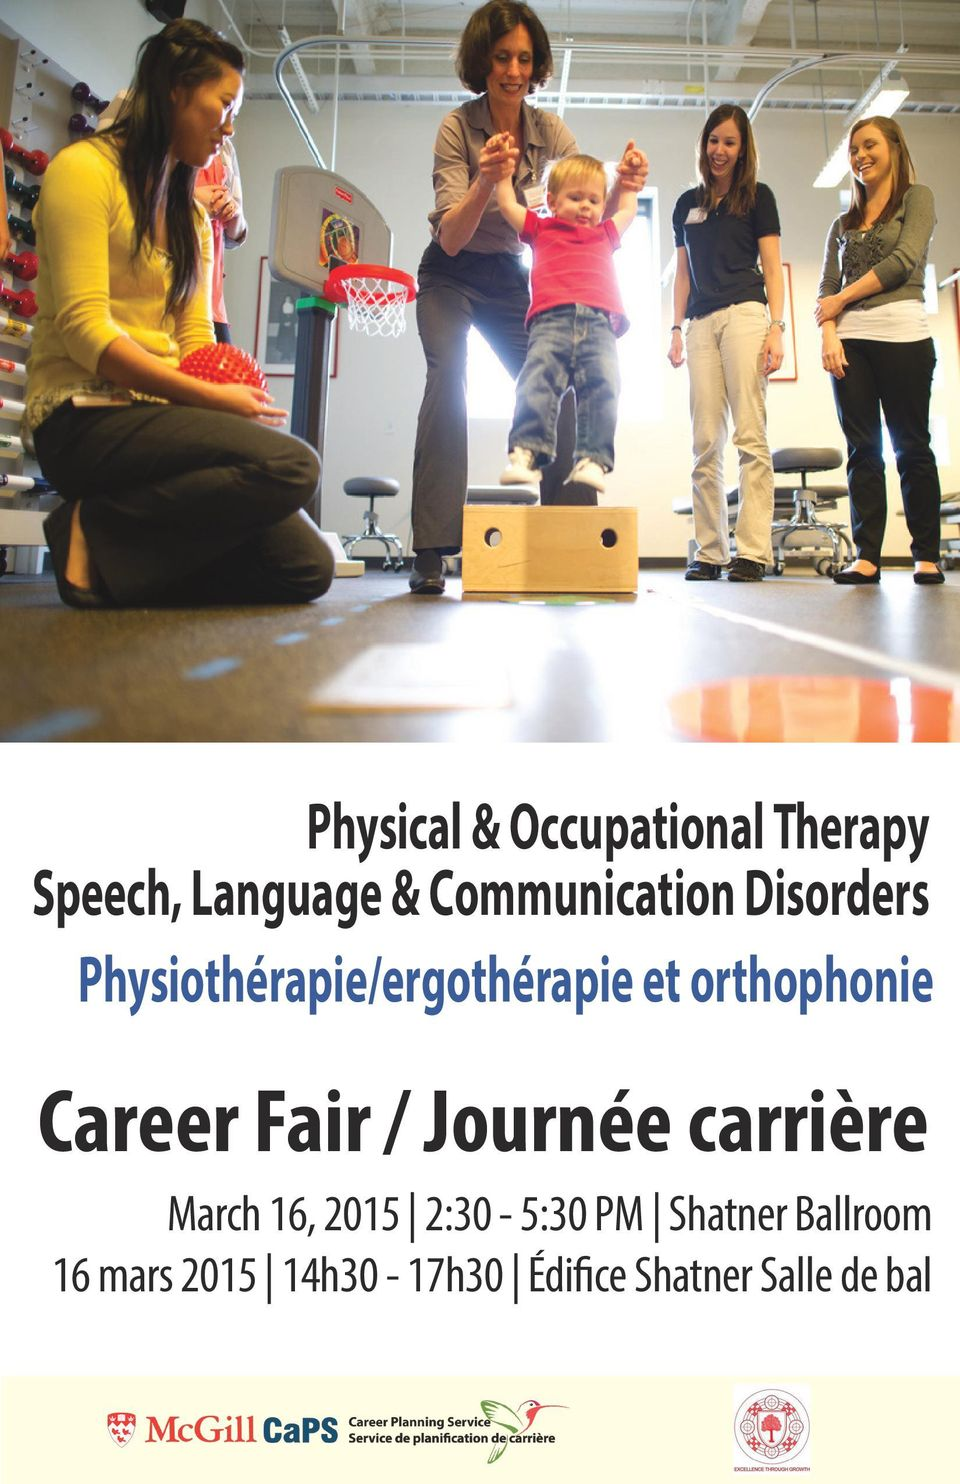 Career Fair / Journée carrière March 16, 2015 2:30-5:30 PM